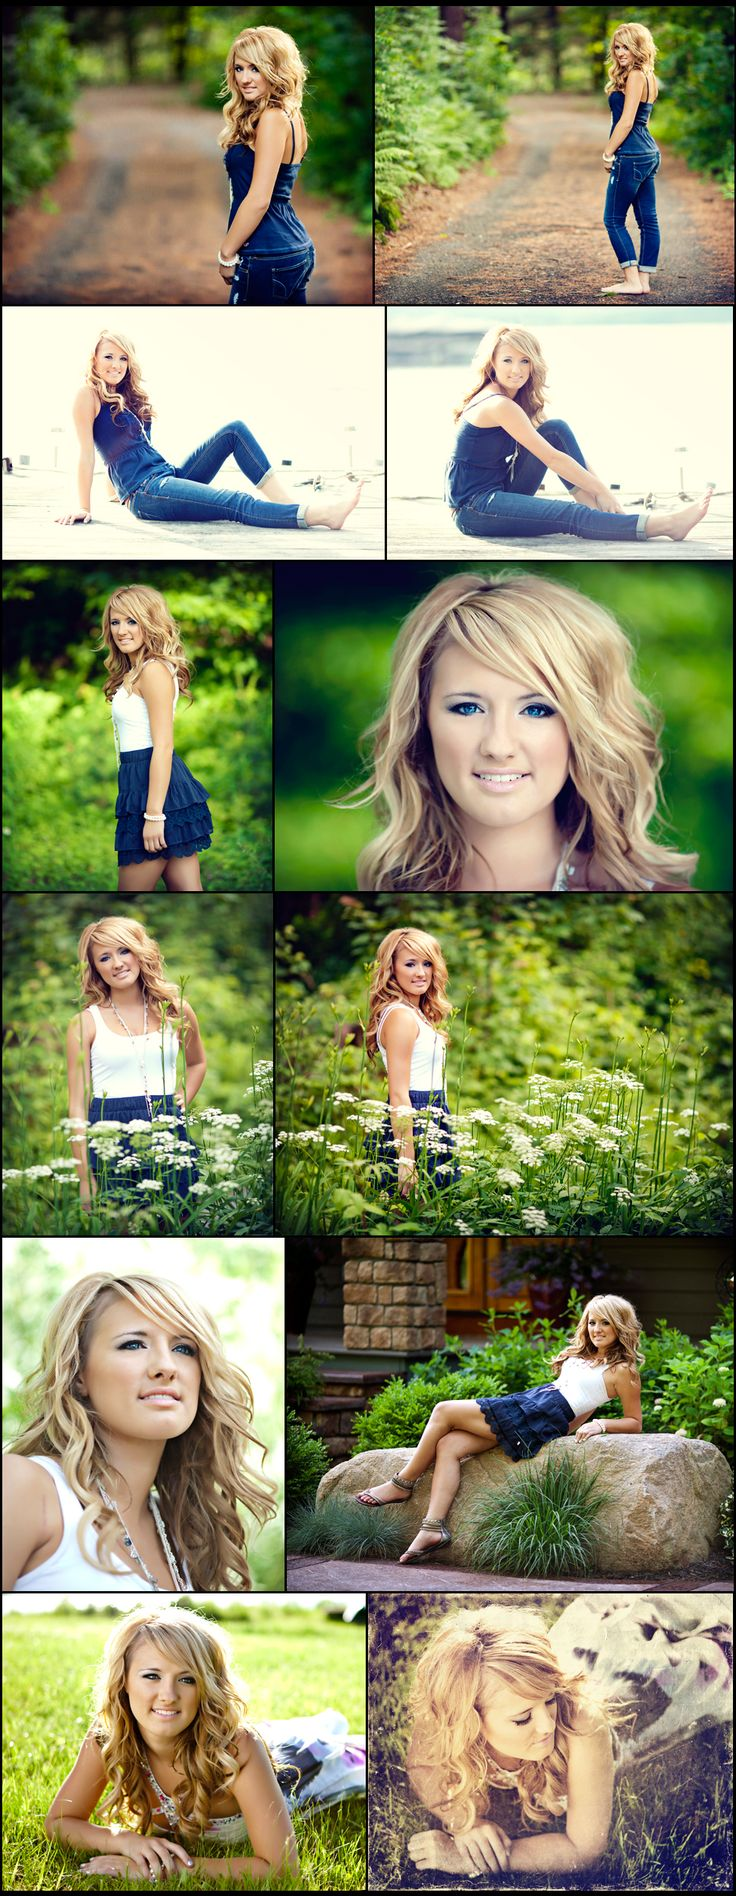 It's that time of year! Time to get your senior pictures done. Kayla here was our first senior session of the season and she decided to have her session at her lake house. It was a beautiful evening and everything came together perfectly :) Hair and make-up by Nvious